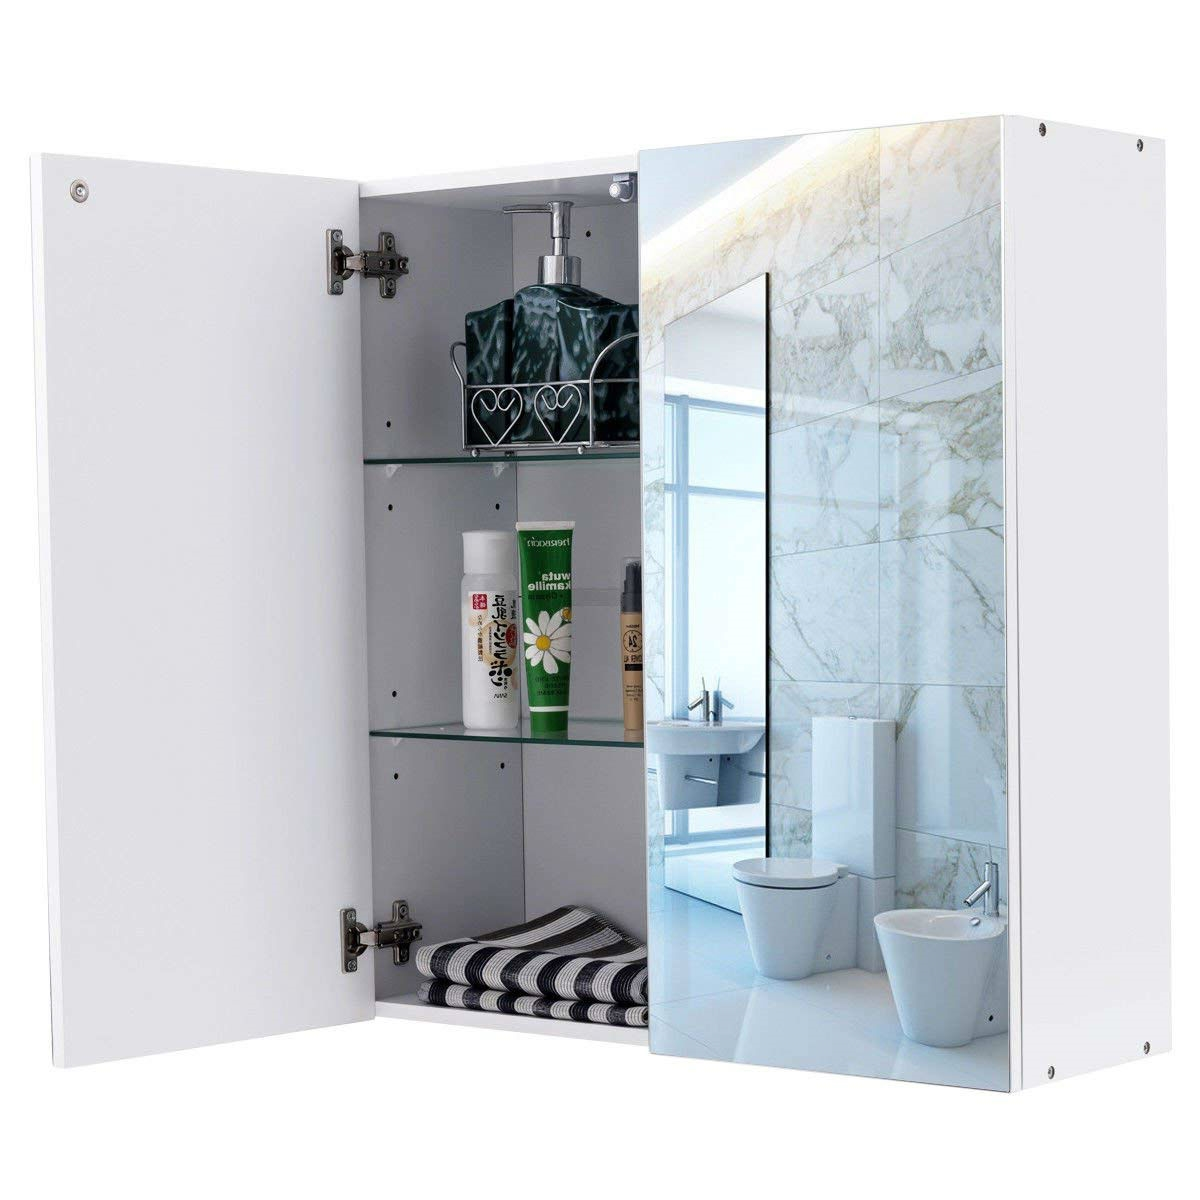 Modern 24inch Wall Mounted Bathroom Medicine Cabinet with